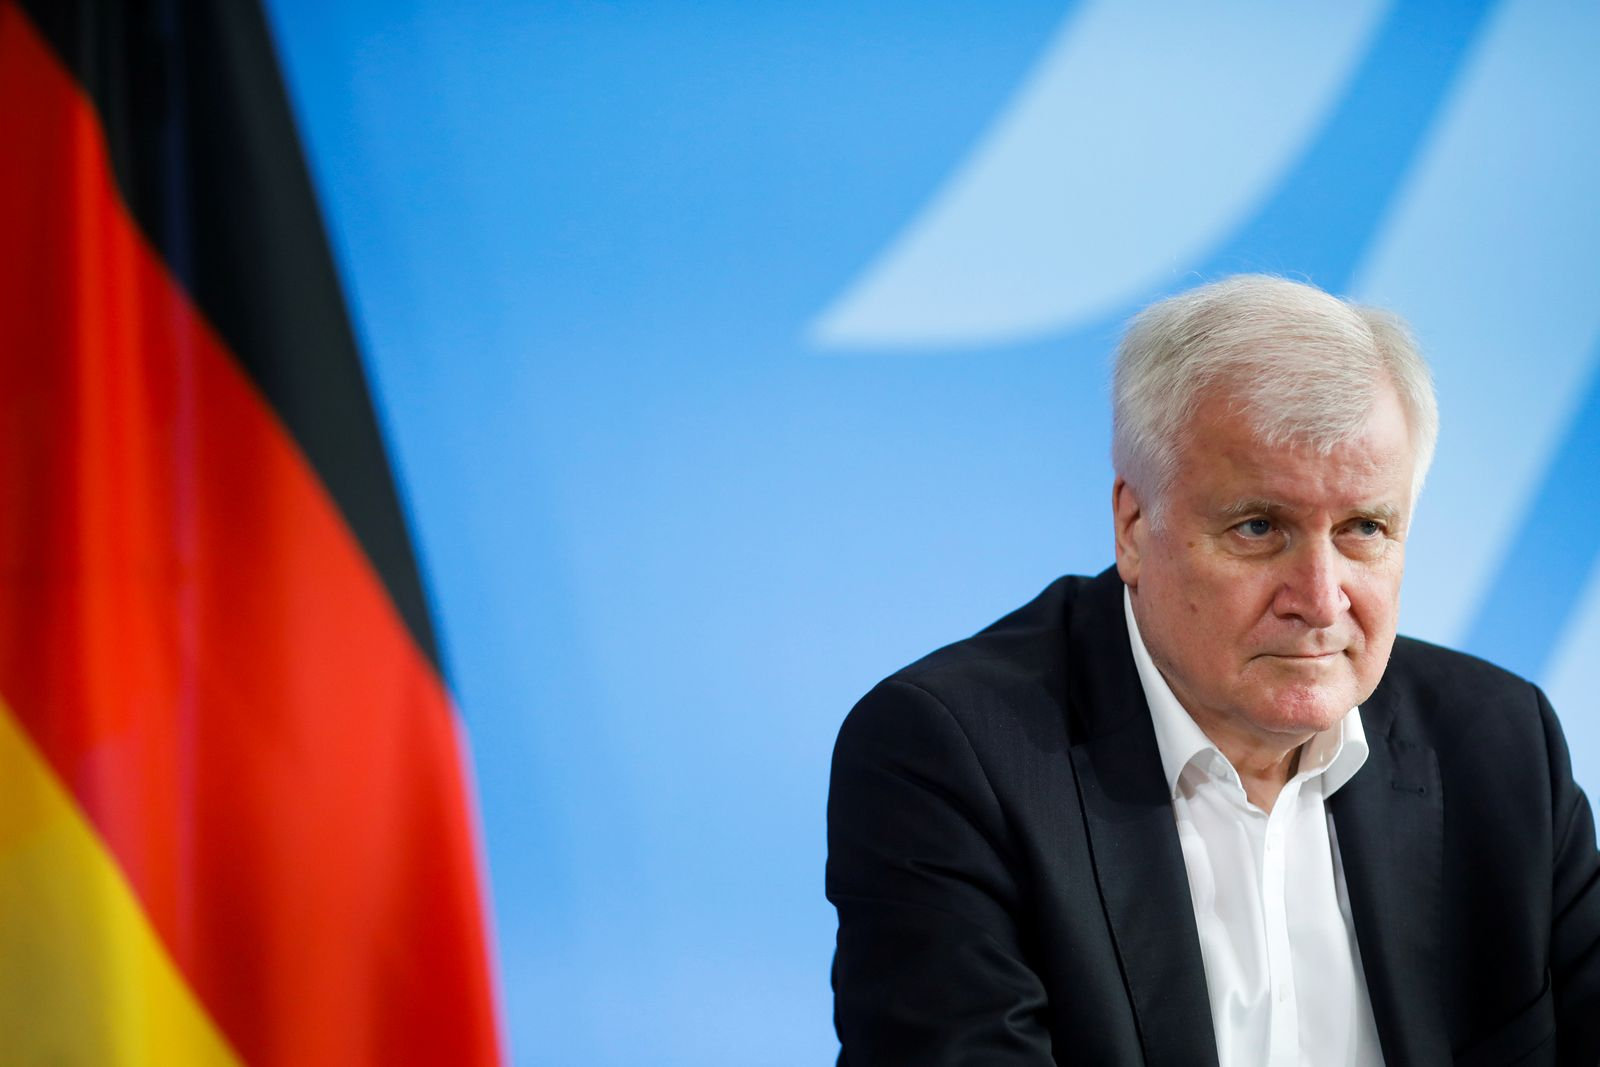 German Interior Minister Horst Seehofer briefs the media after a meeting with his Austrian counterpart Karl Nehammer at the Interior Ministry in Berlin